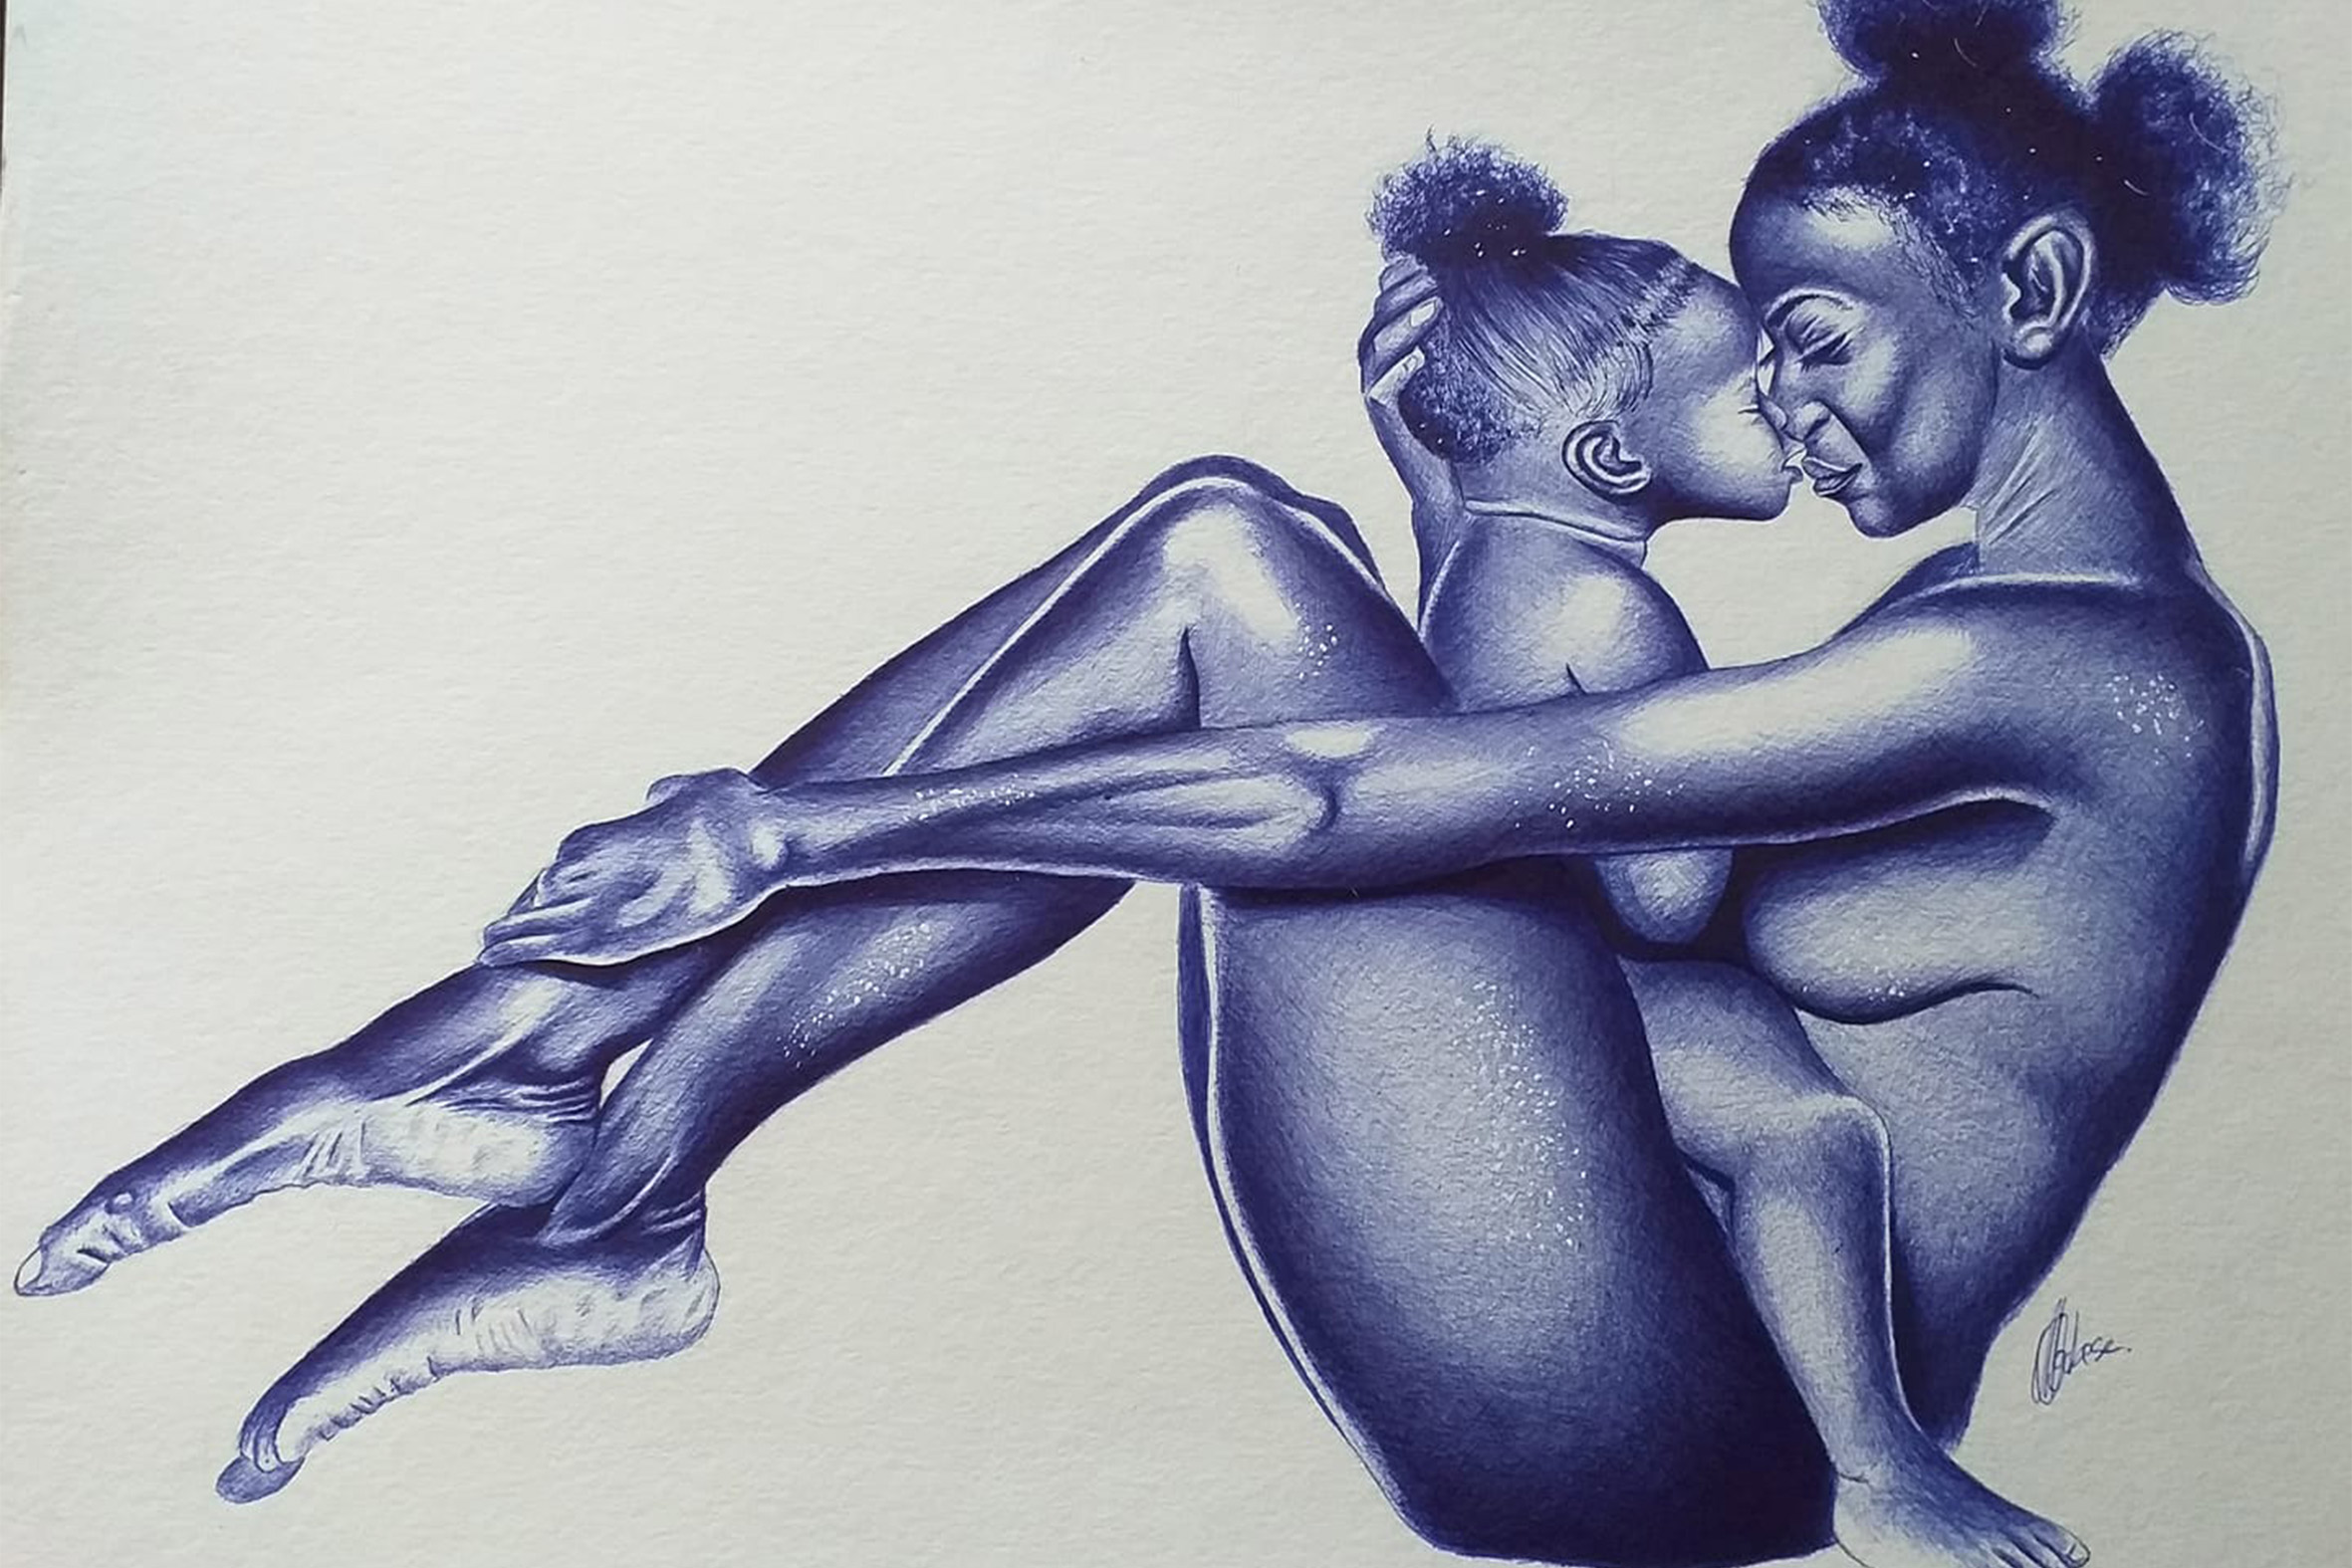 15 Jan 2020: A mother and daughter depiction titled Mother-Child Bond. The artist adds: 'They are comfortable in the blue of their skin.' (Photograph supplied)